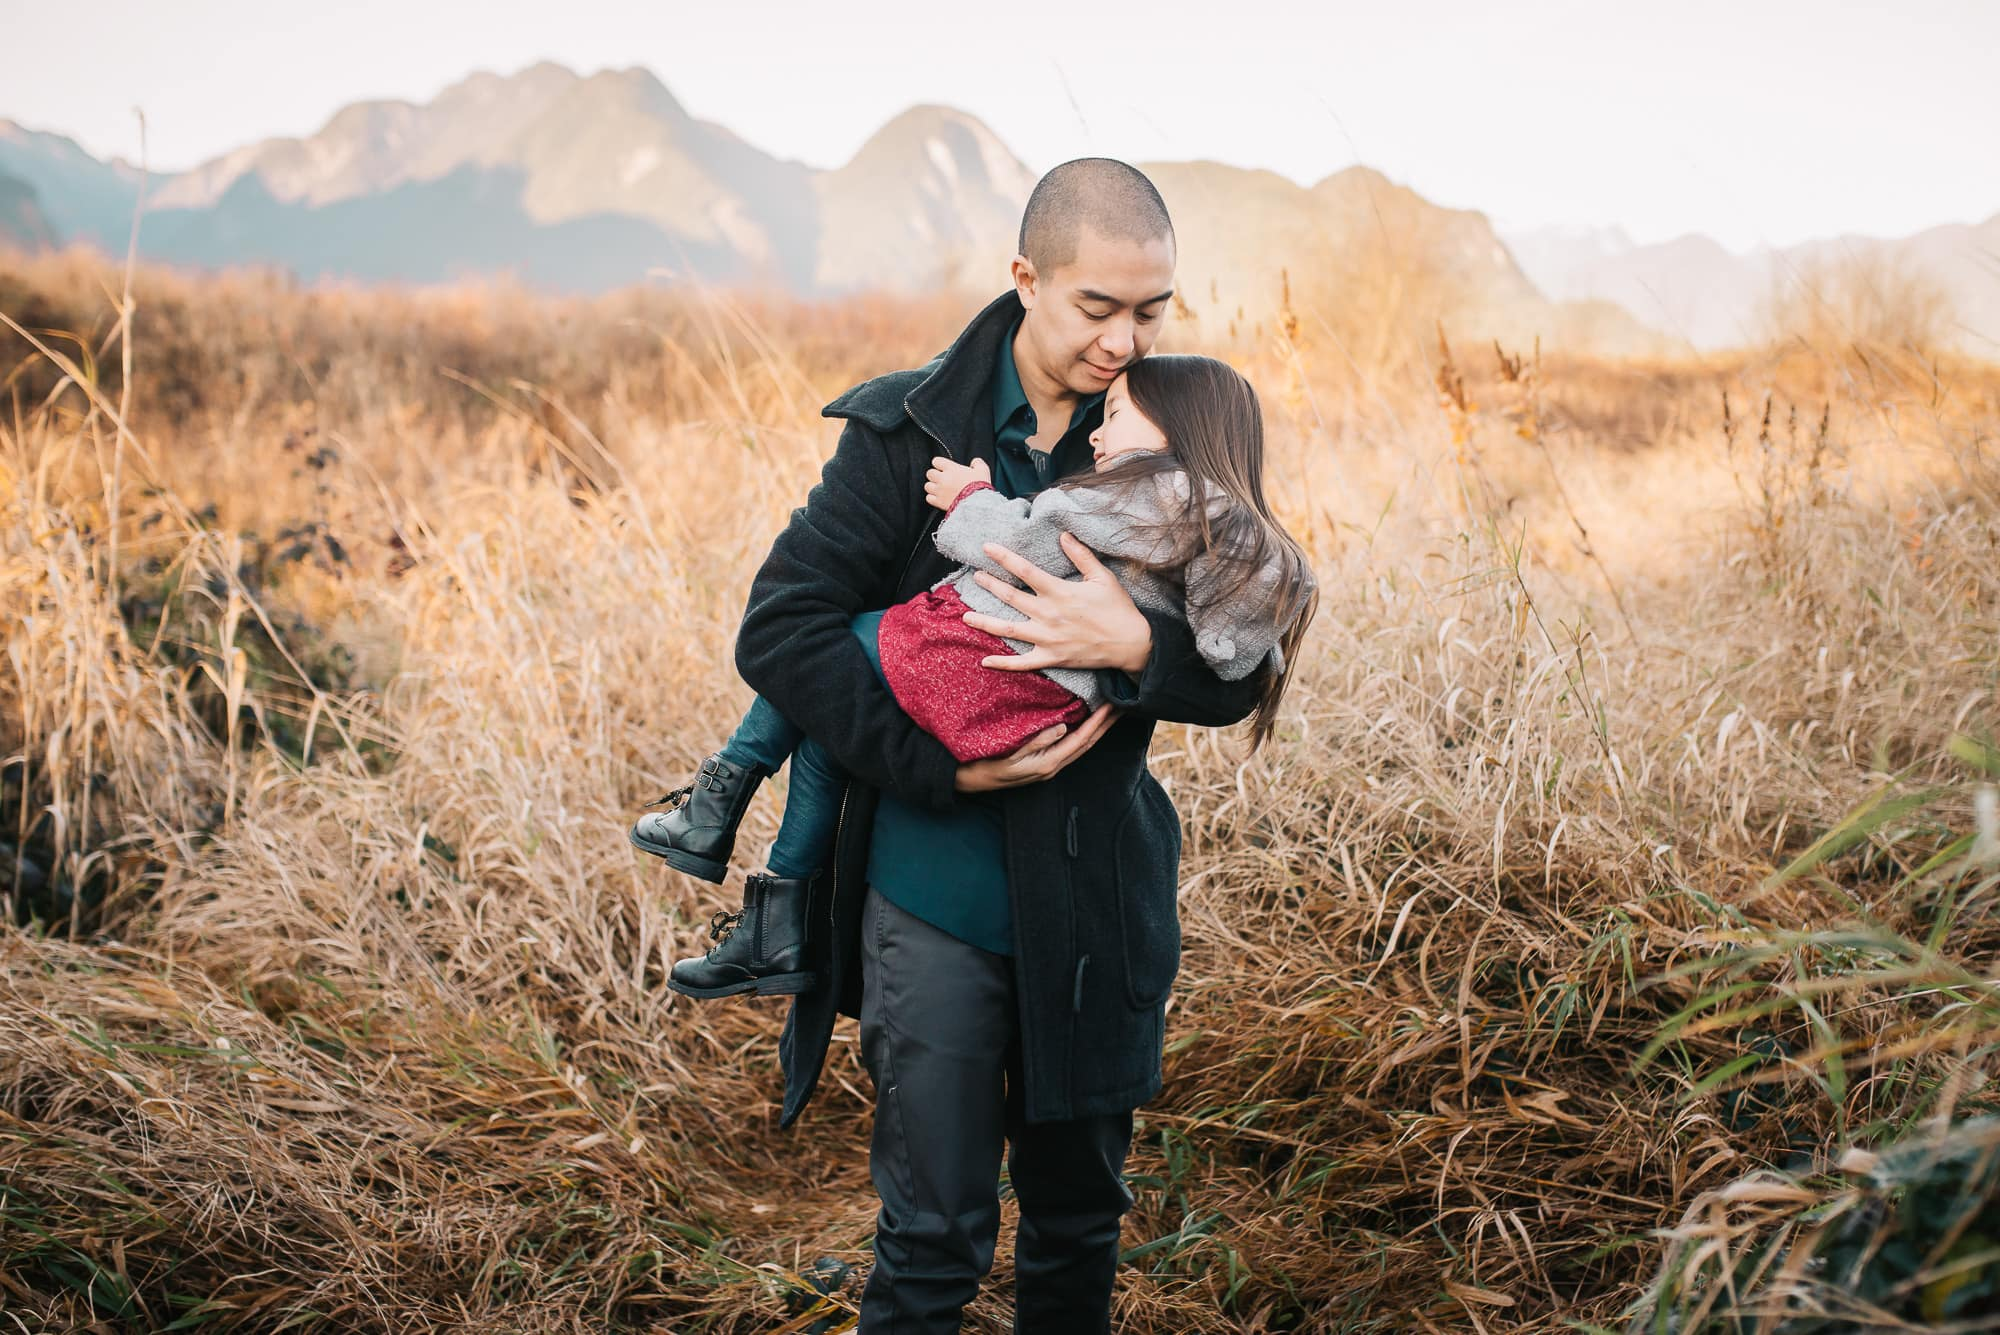 Vancouver Family Photographer captured tender moment of dad carrying daughter through reeds in Pitt Lake